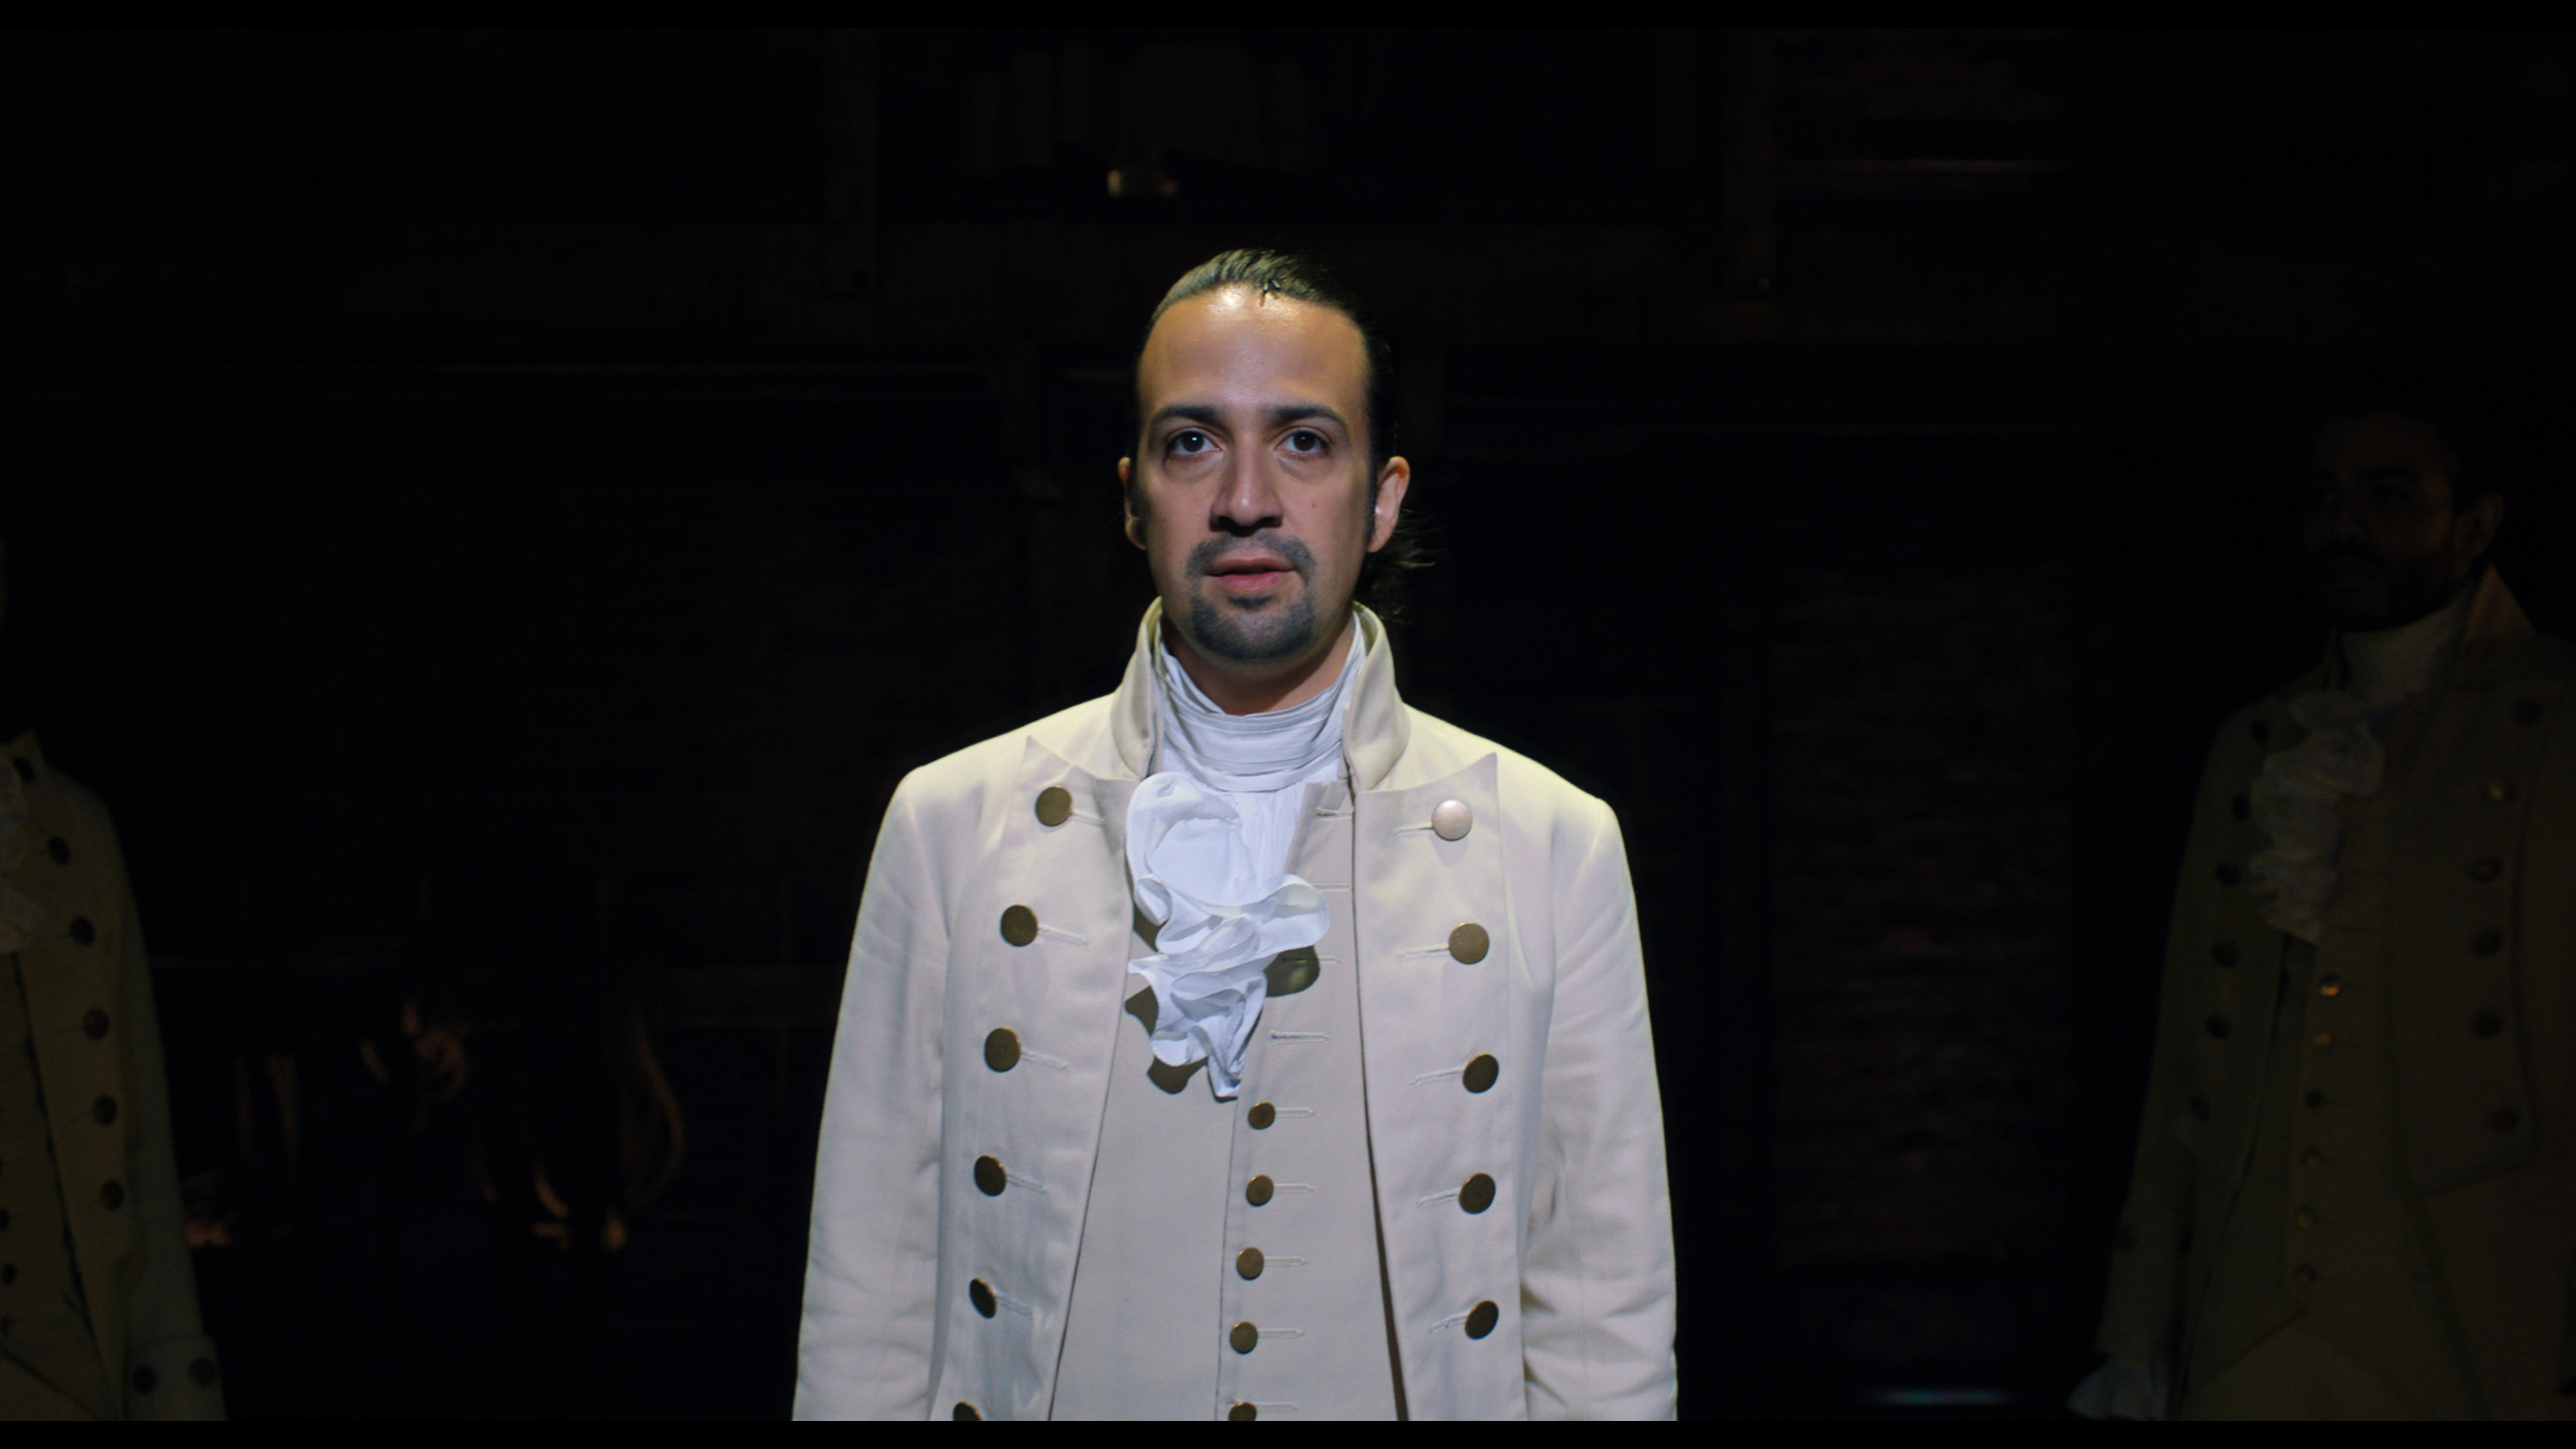 ART OF THE CUT with the editor of Hamilton 10